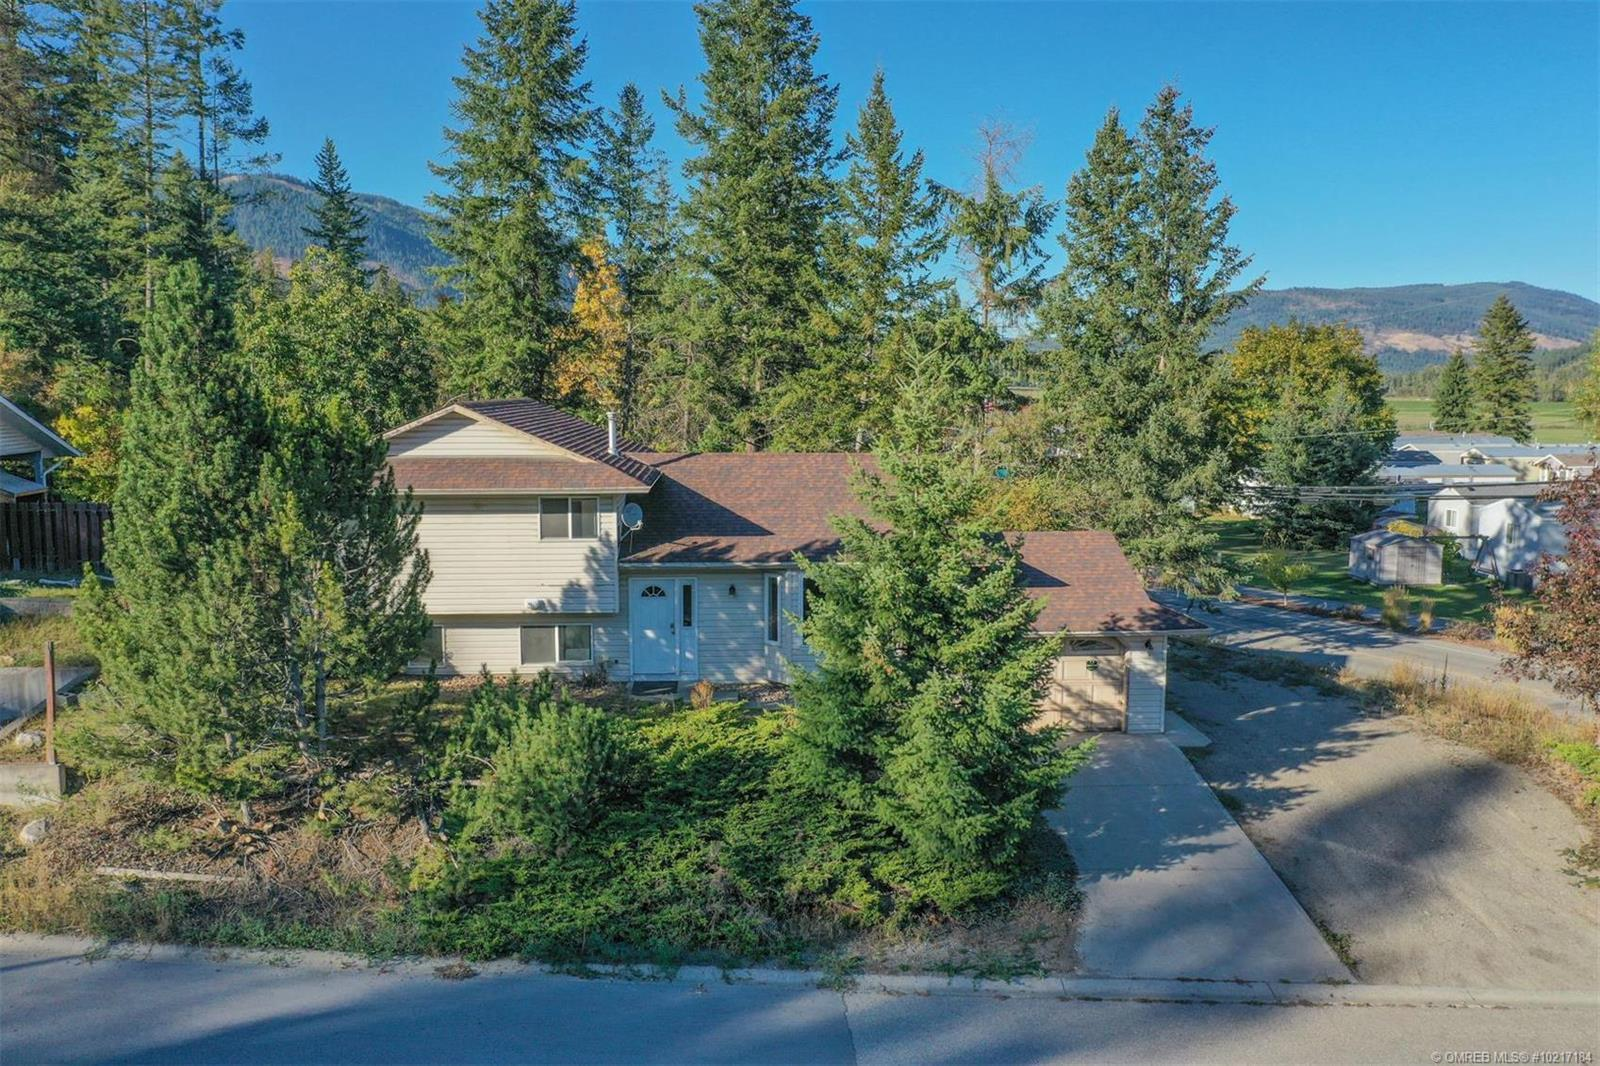 Listing 10217184 - Thumbmnail Photo # 31